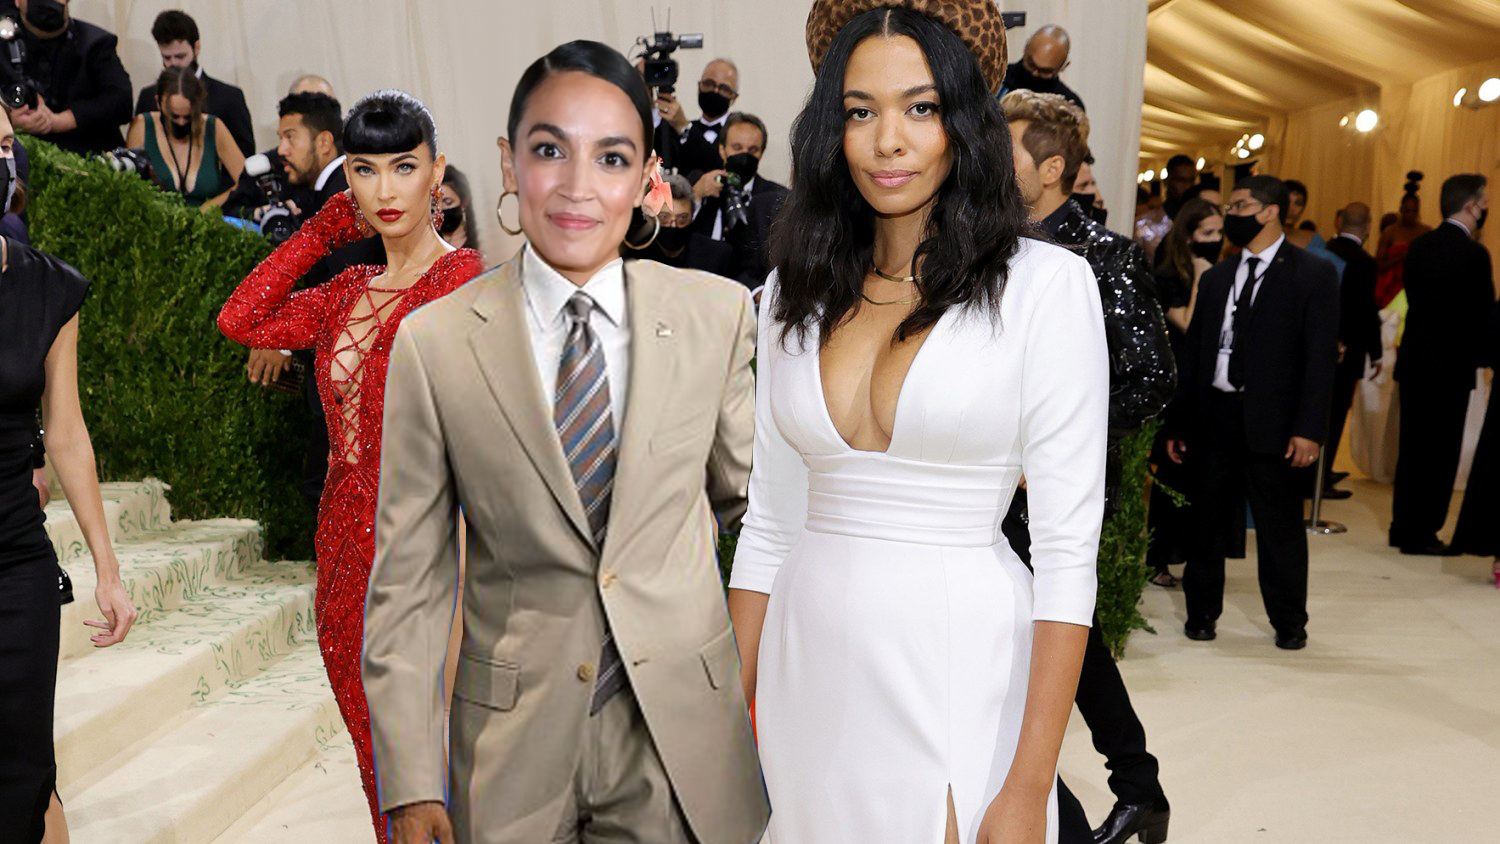 AOC Ripped for Attending Met Gala in Tan Suit